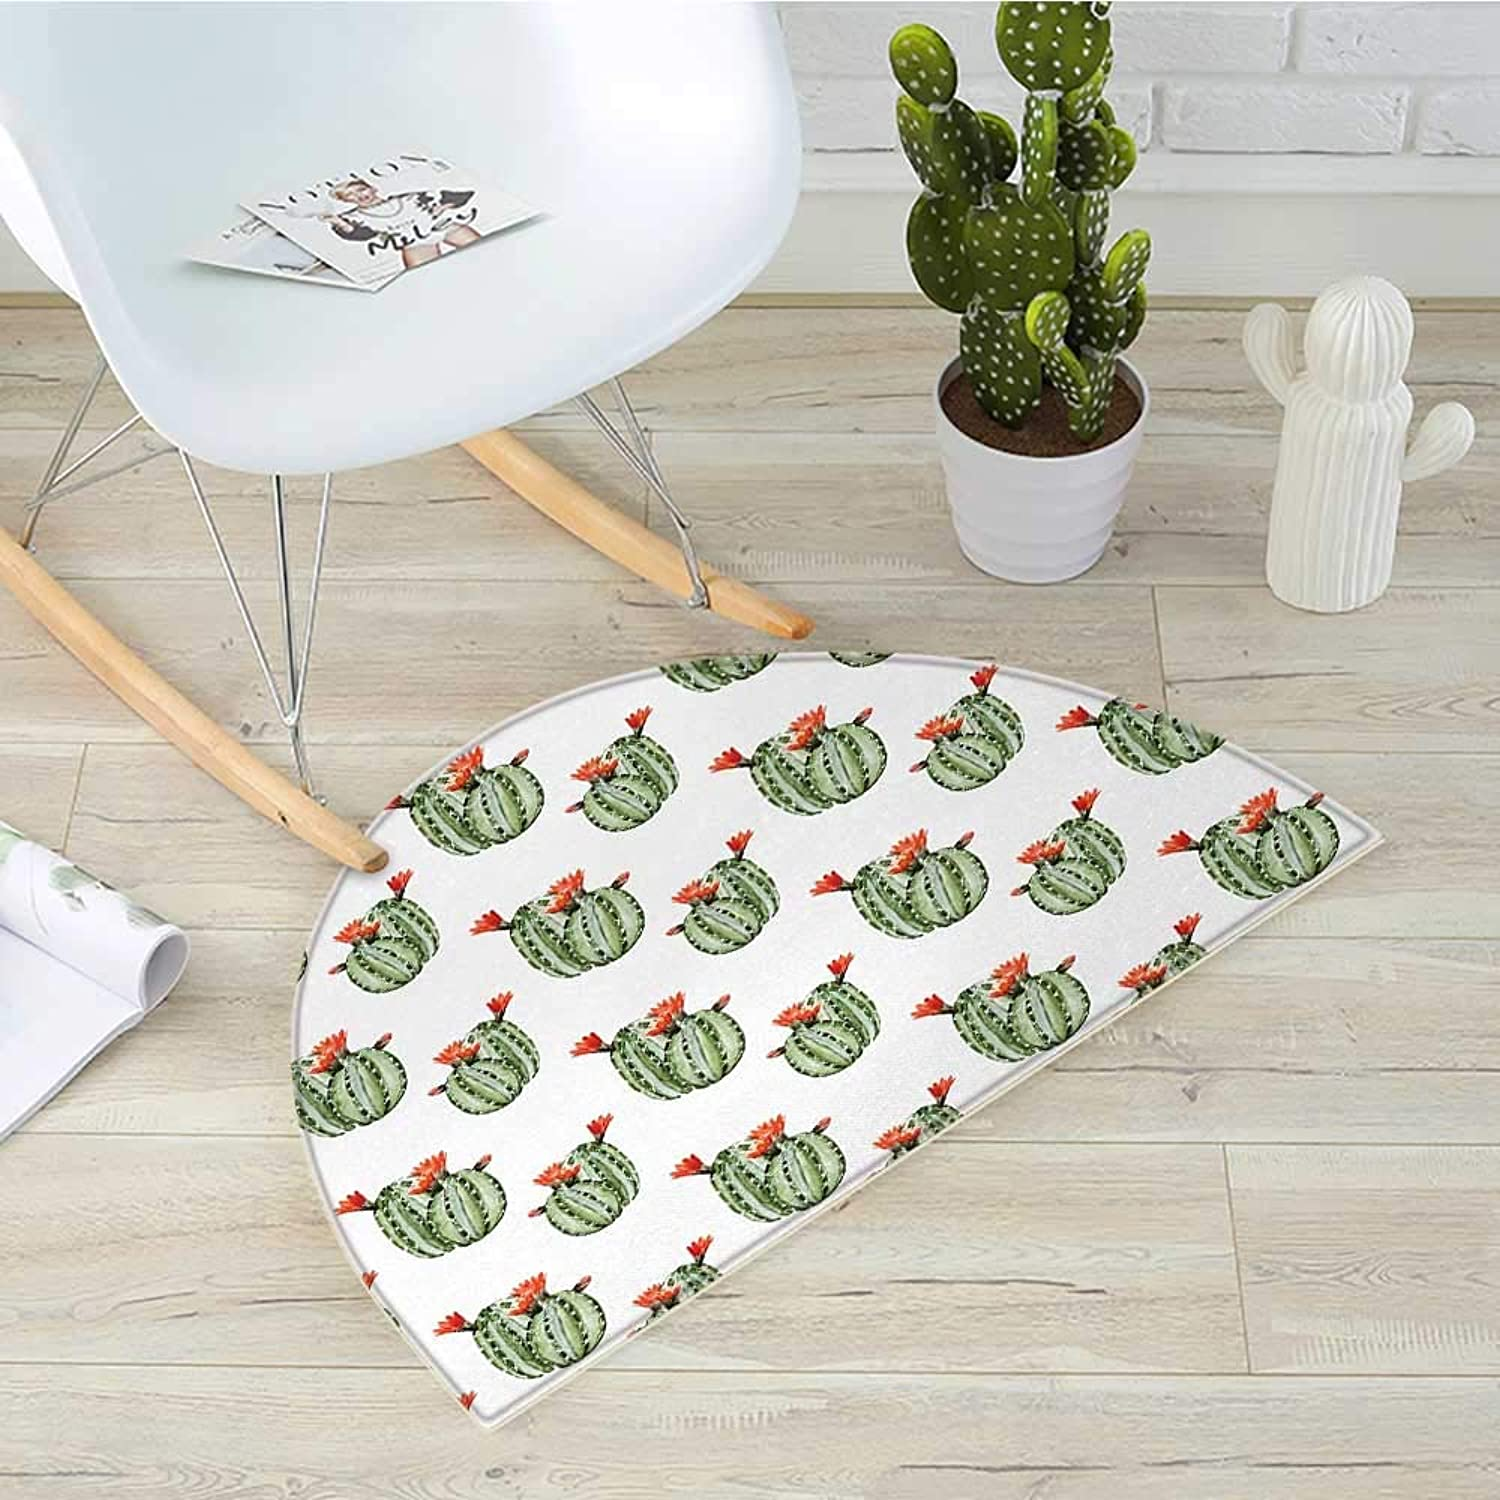 Cactus Semicircular CushionCactus with Spikes and Red Flowers Mexican Hot Desert Vintage Image Artwork Entry Door Mat H 31.5  xD 47.2  Green and orange